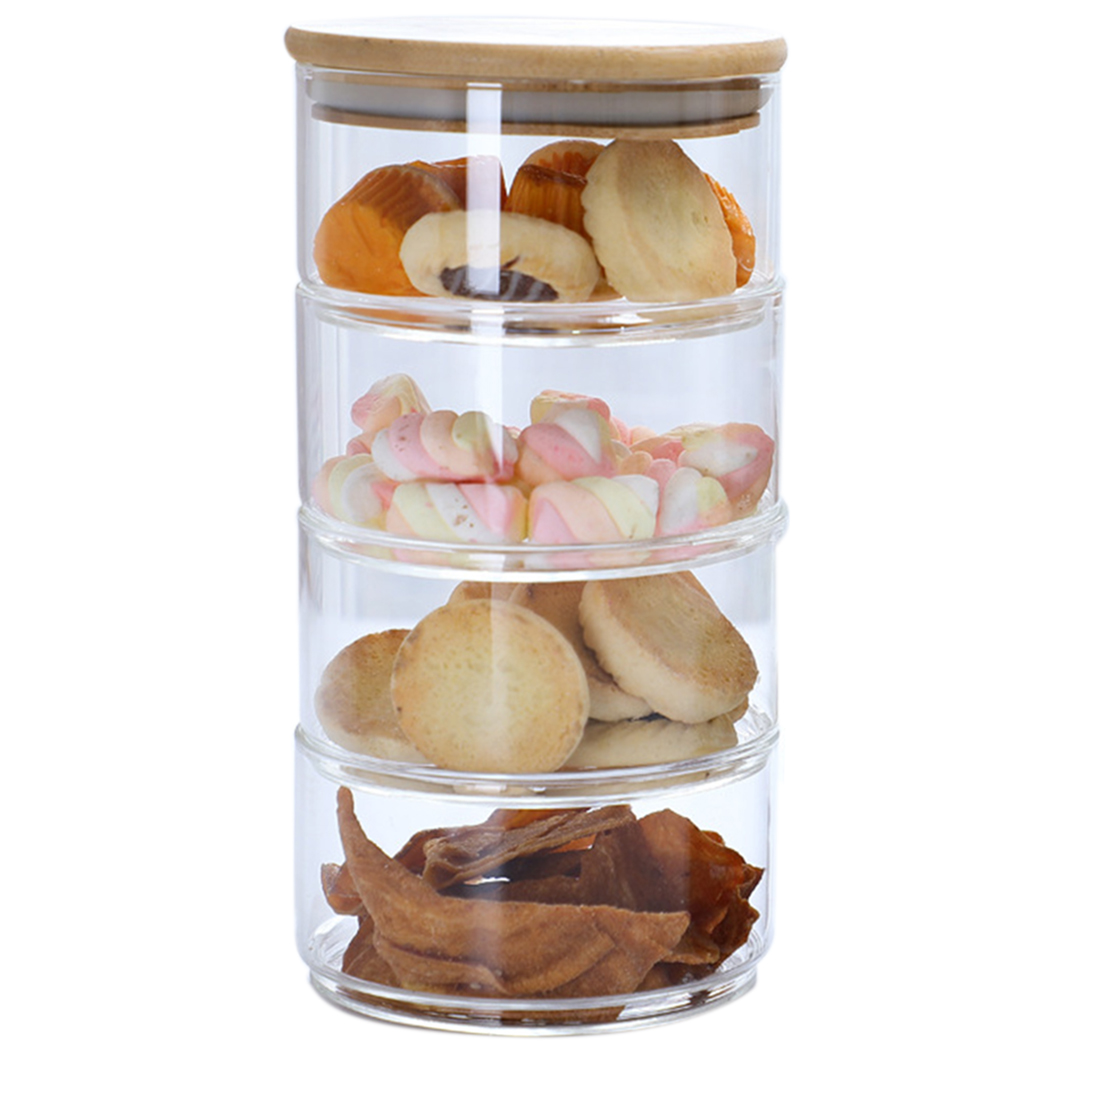 1-4 Tier Glass Apothecary Jar Kitchen Candy Cookie Storage Containers With Lid - Transparent